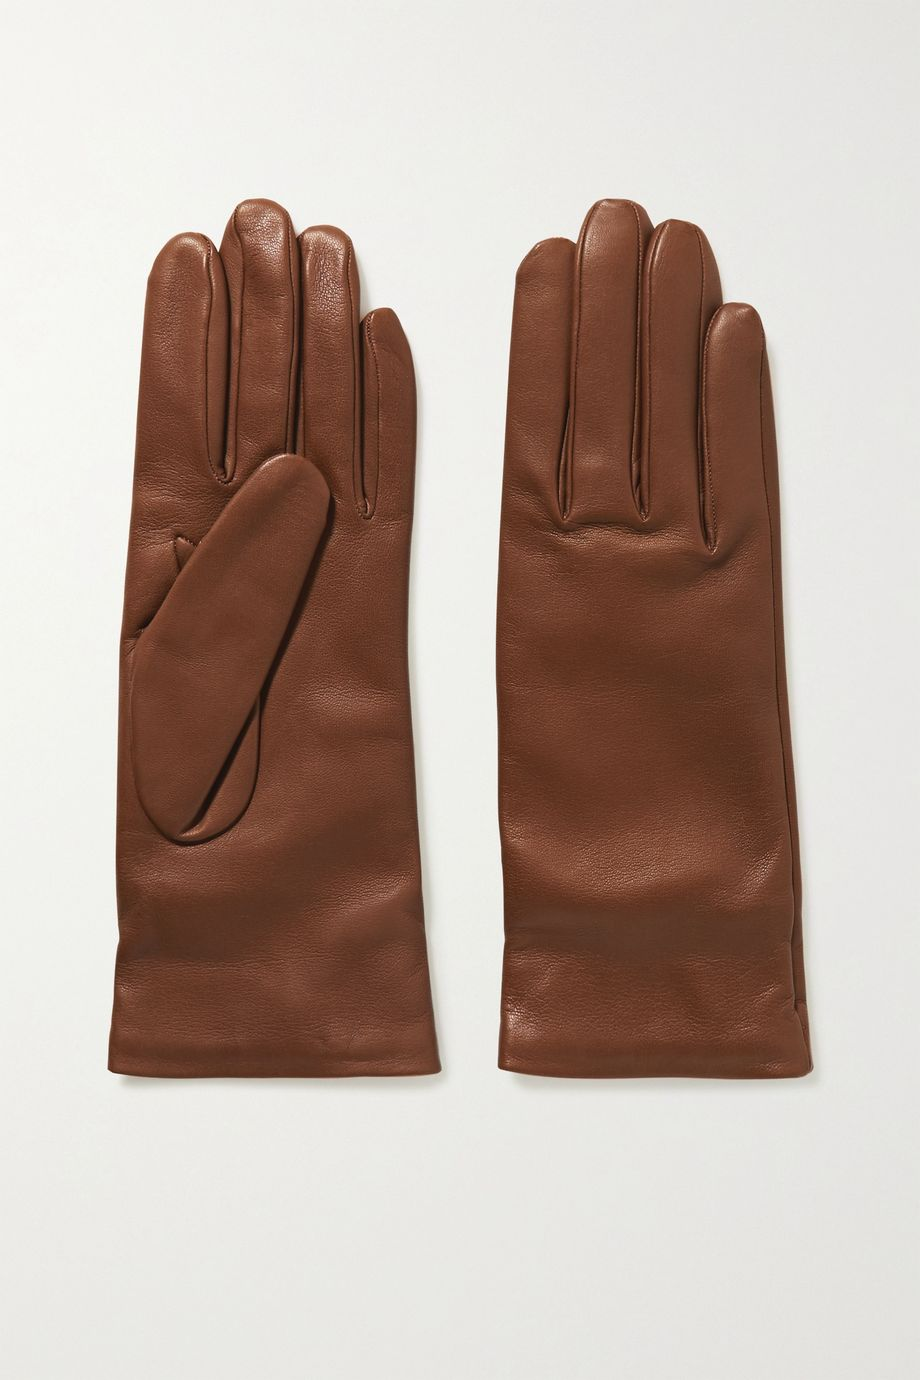 Gabriela Hearst Embroidered leather gloves